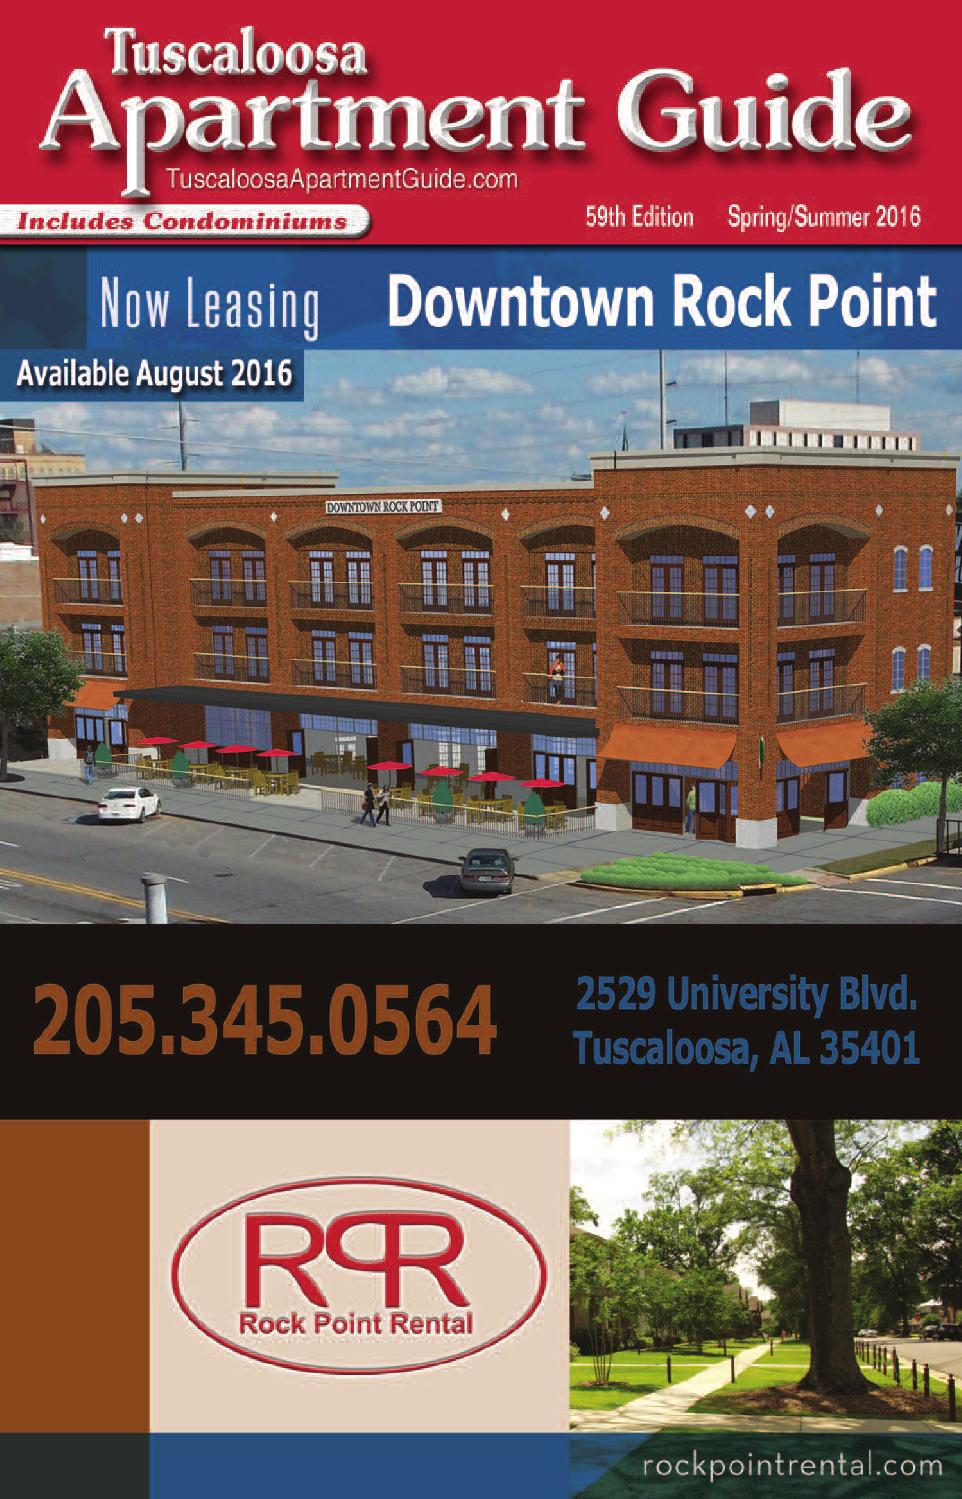 tuscaloosa apartment guide, spring-summer 2016jim andrews - issuu